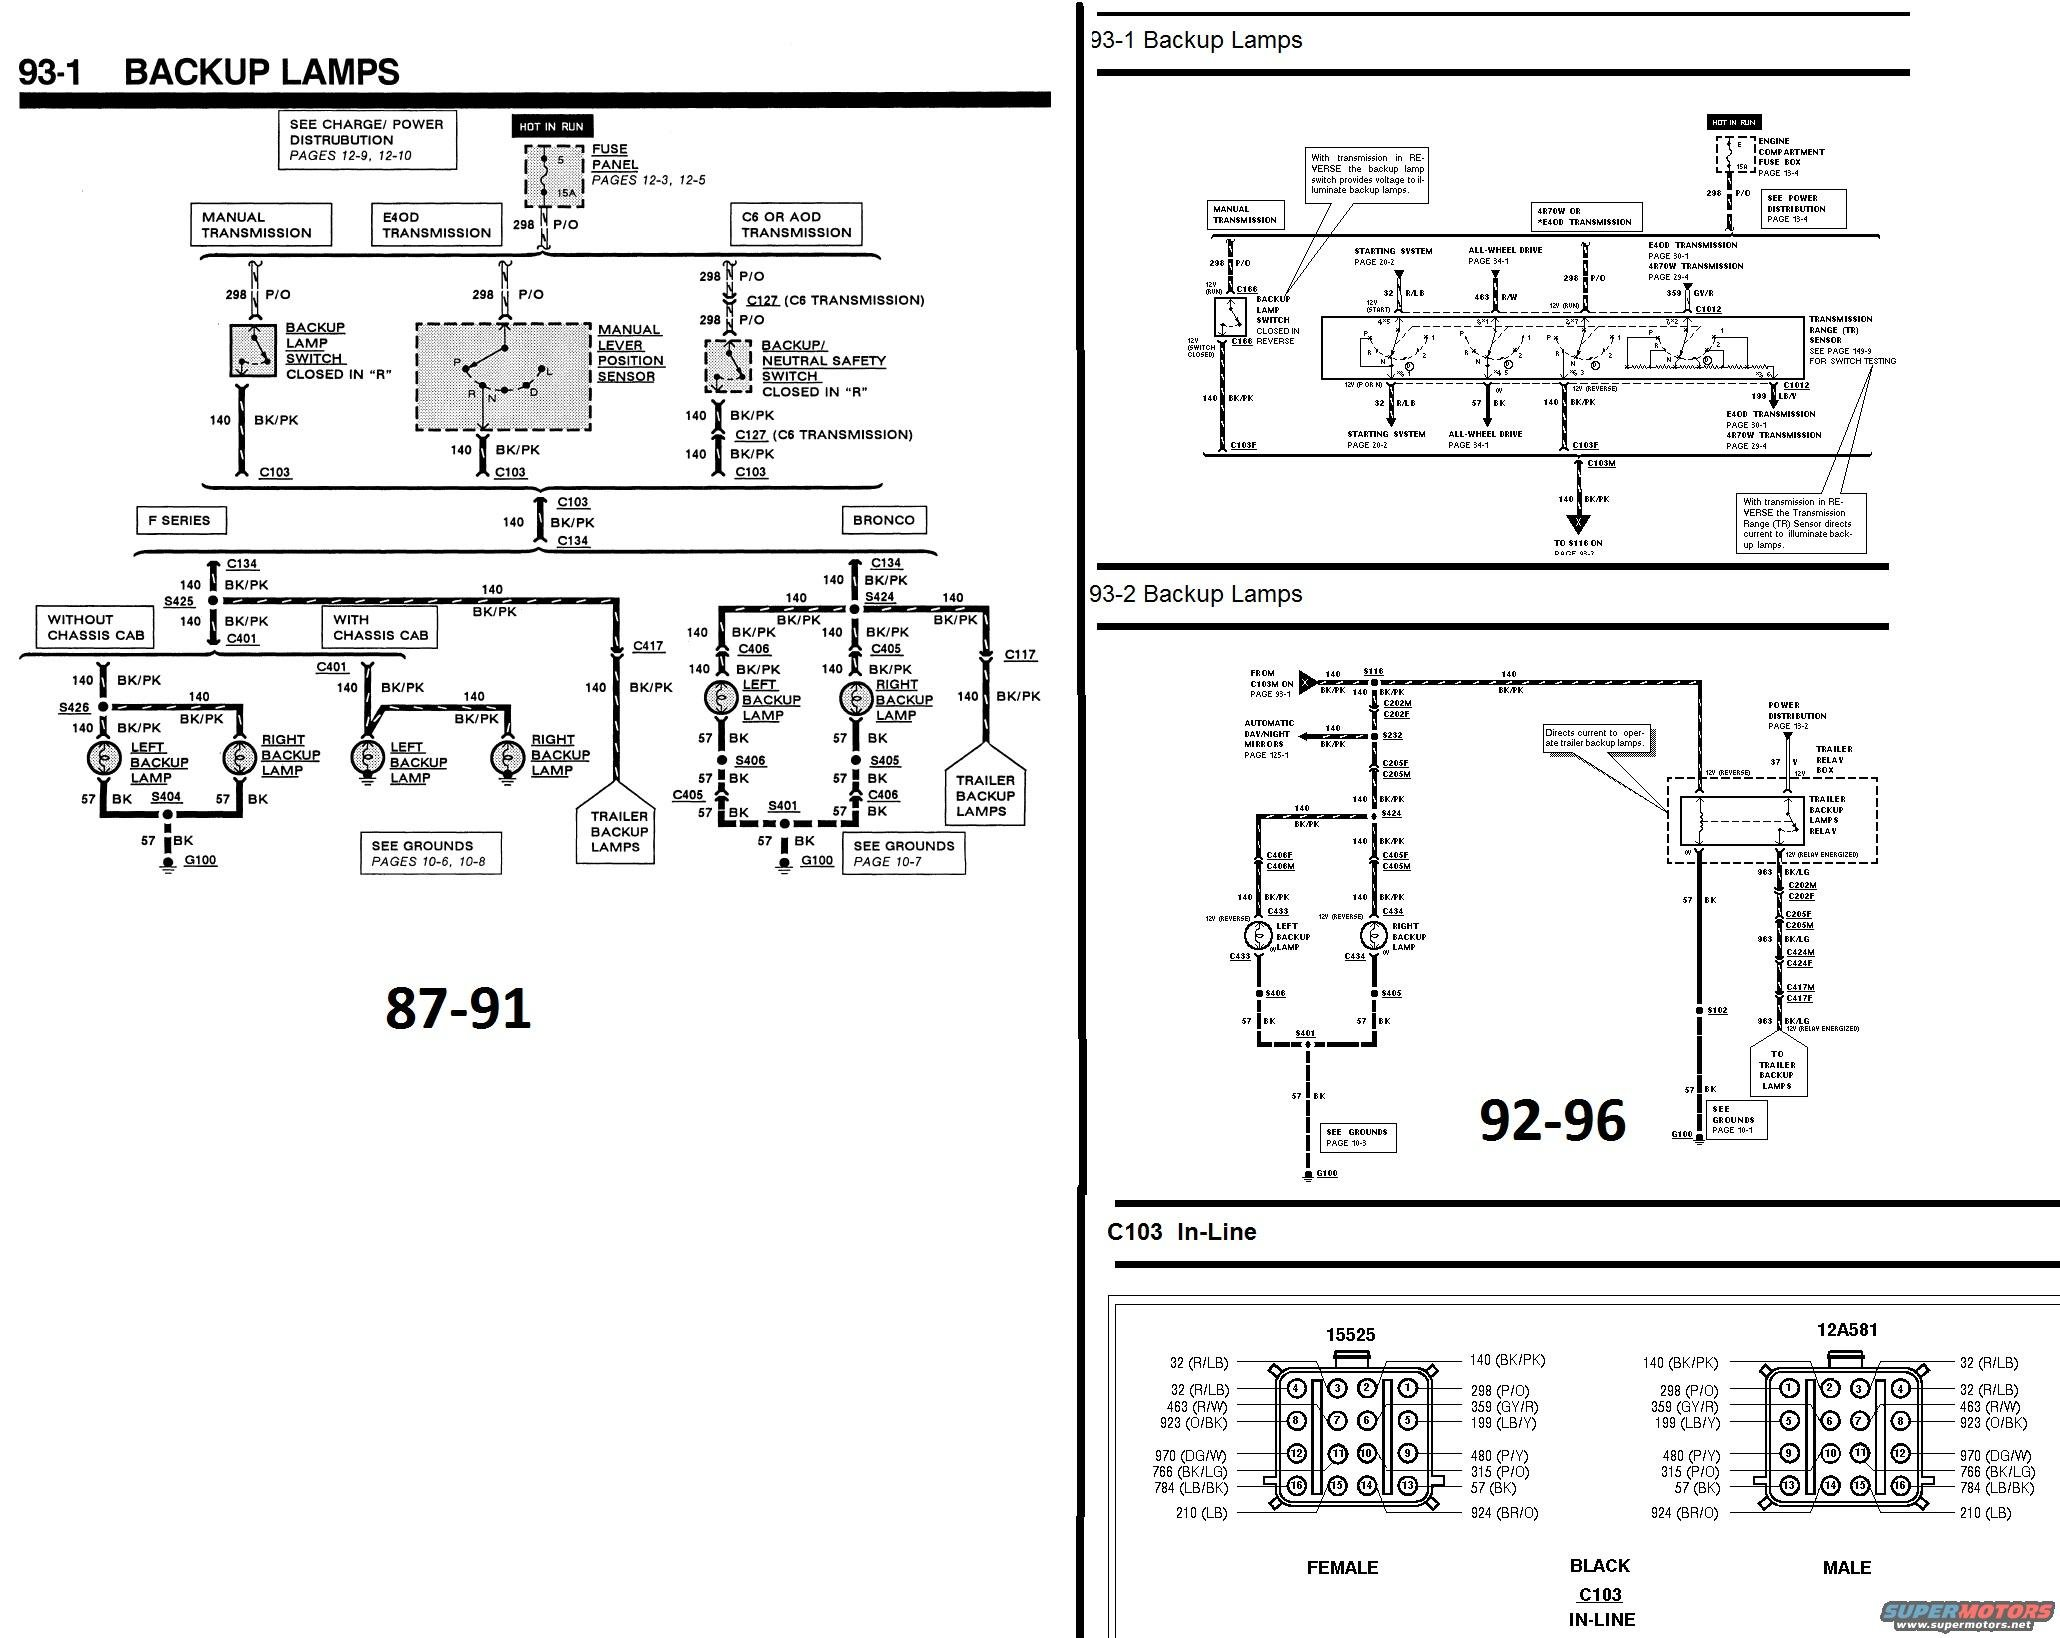 Yamaha Yfm350Xp Warrior Atv Wiring Diagram And Color Code ... on 2001 yamaha grizzly wiring-diagram, 2001 yamaha r6 wiring-diagram, 2001 honda shadow wiring-diagram, 2001 yamaha wolverine 350 wiring diagram,